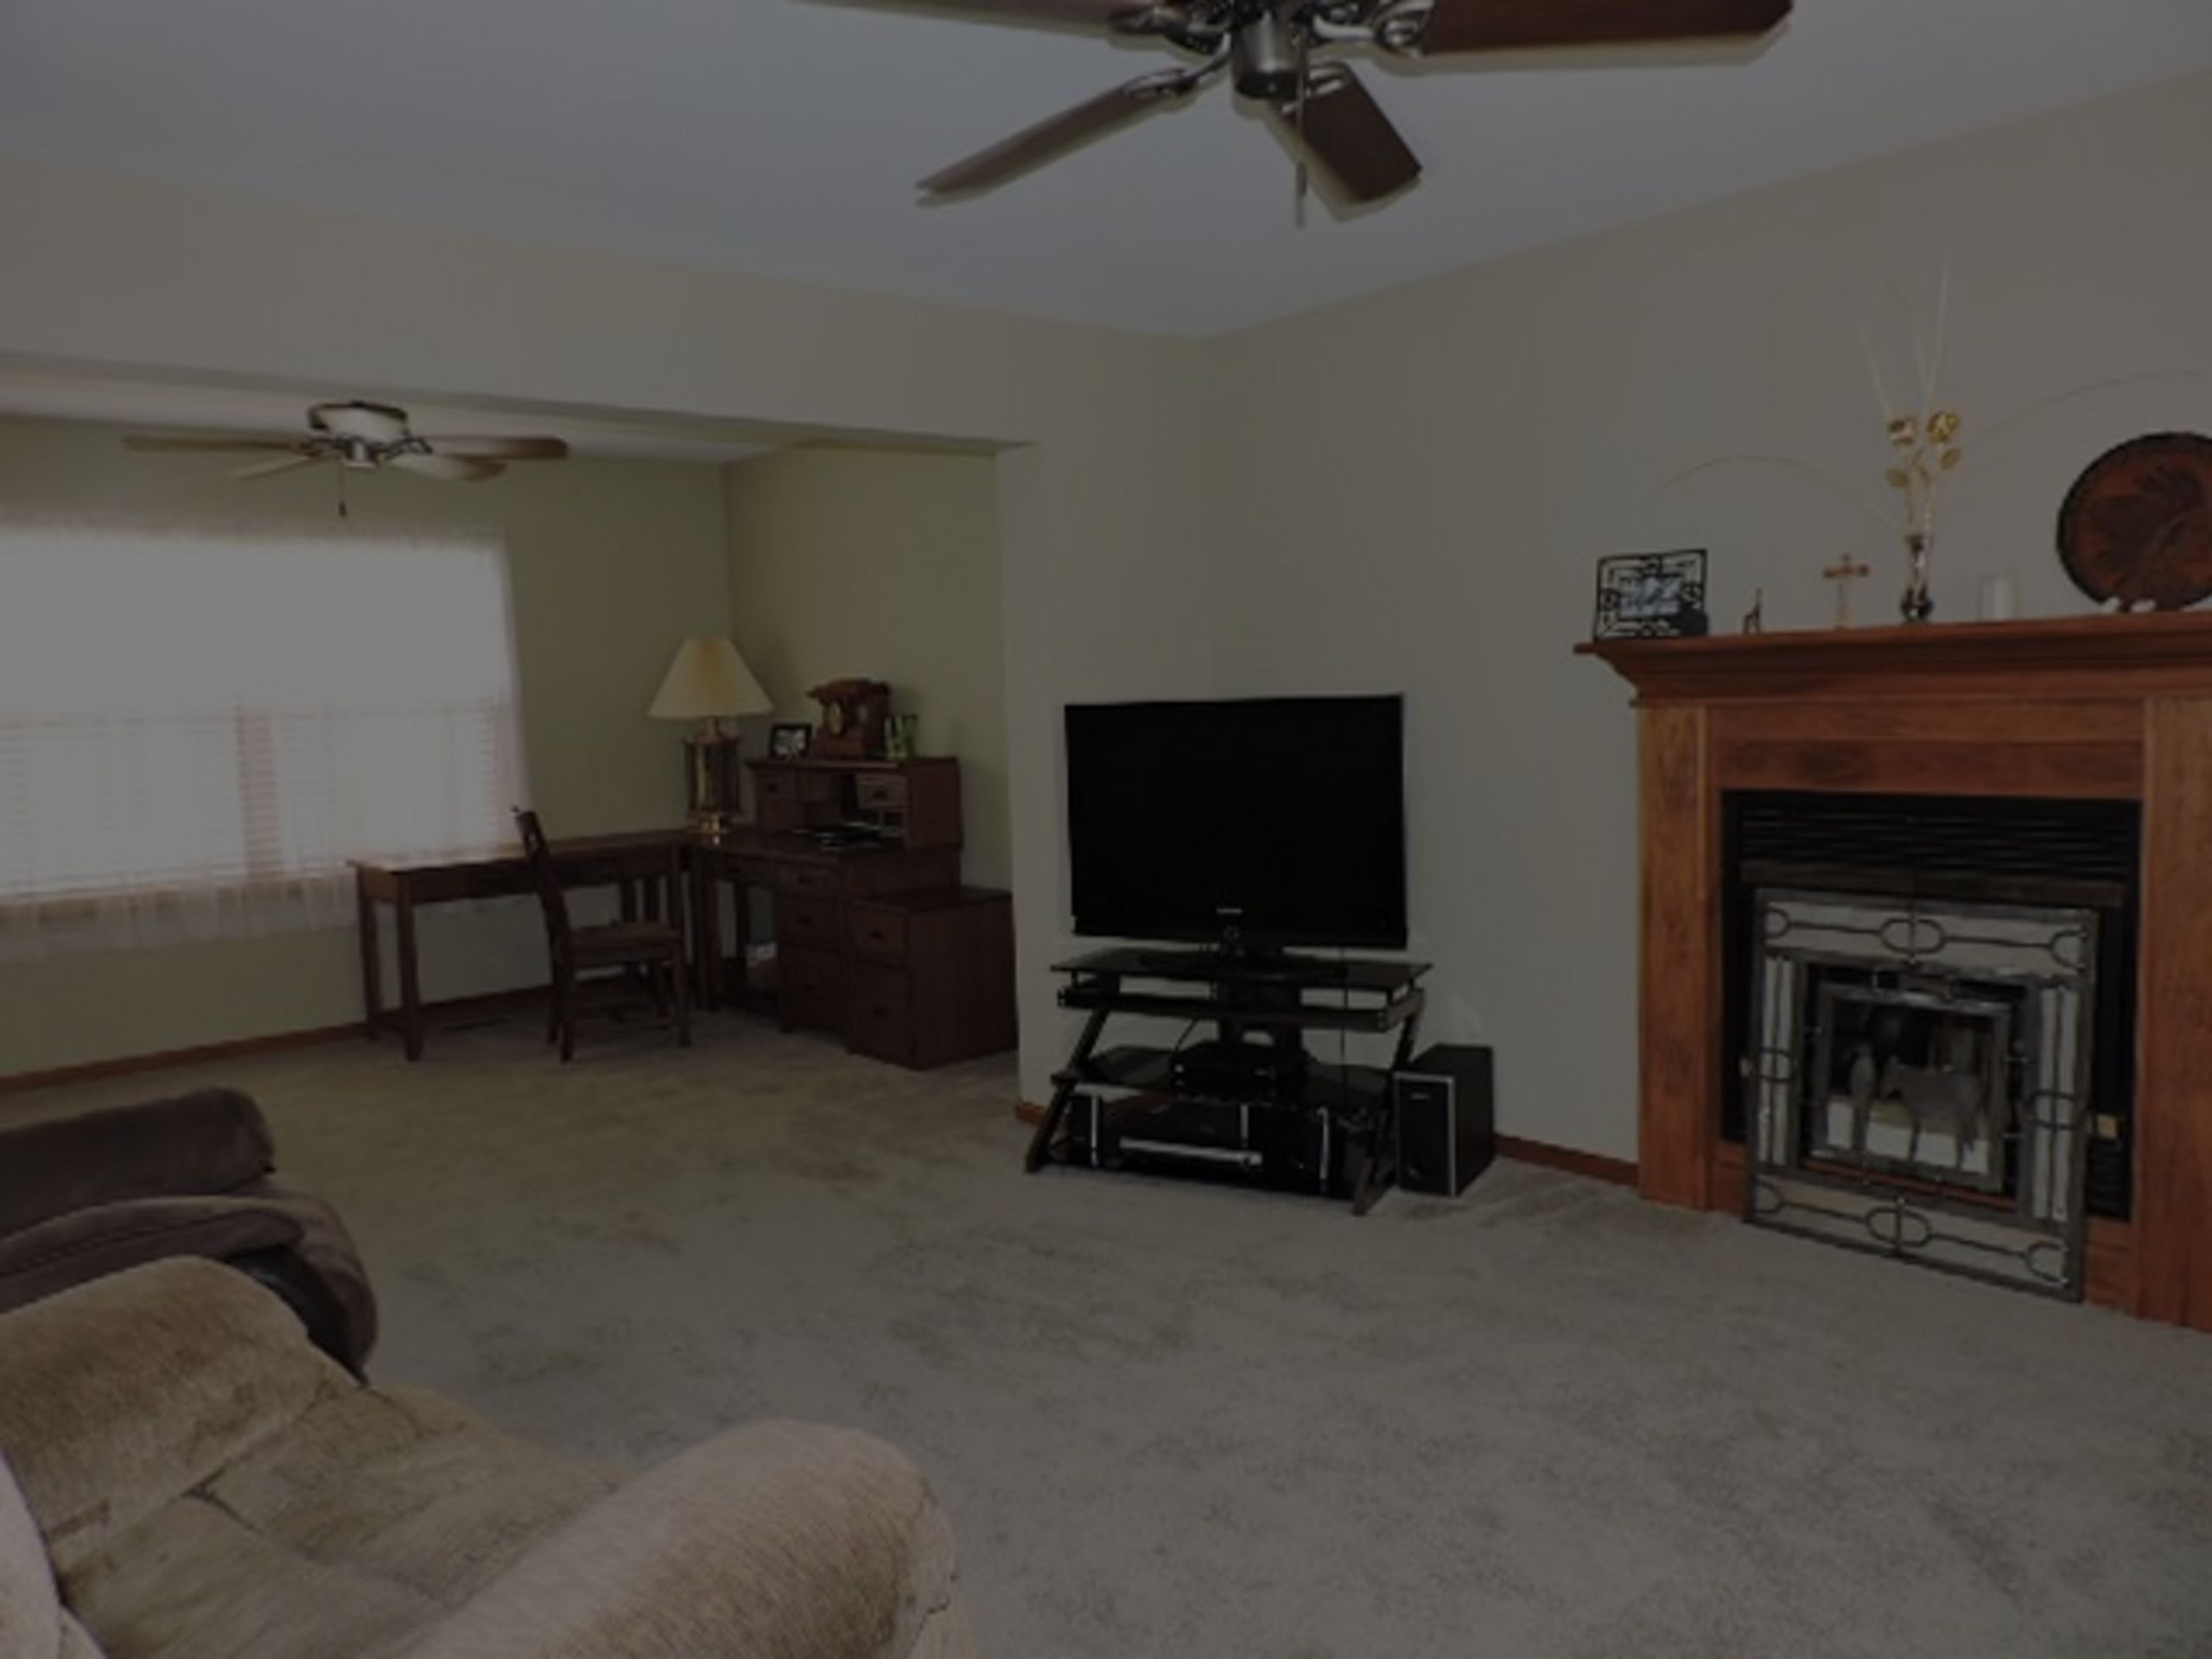 OPEN FAMILY ROOM WITH GAS FIREPLACE